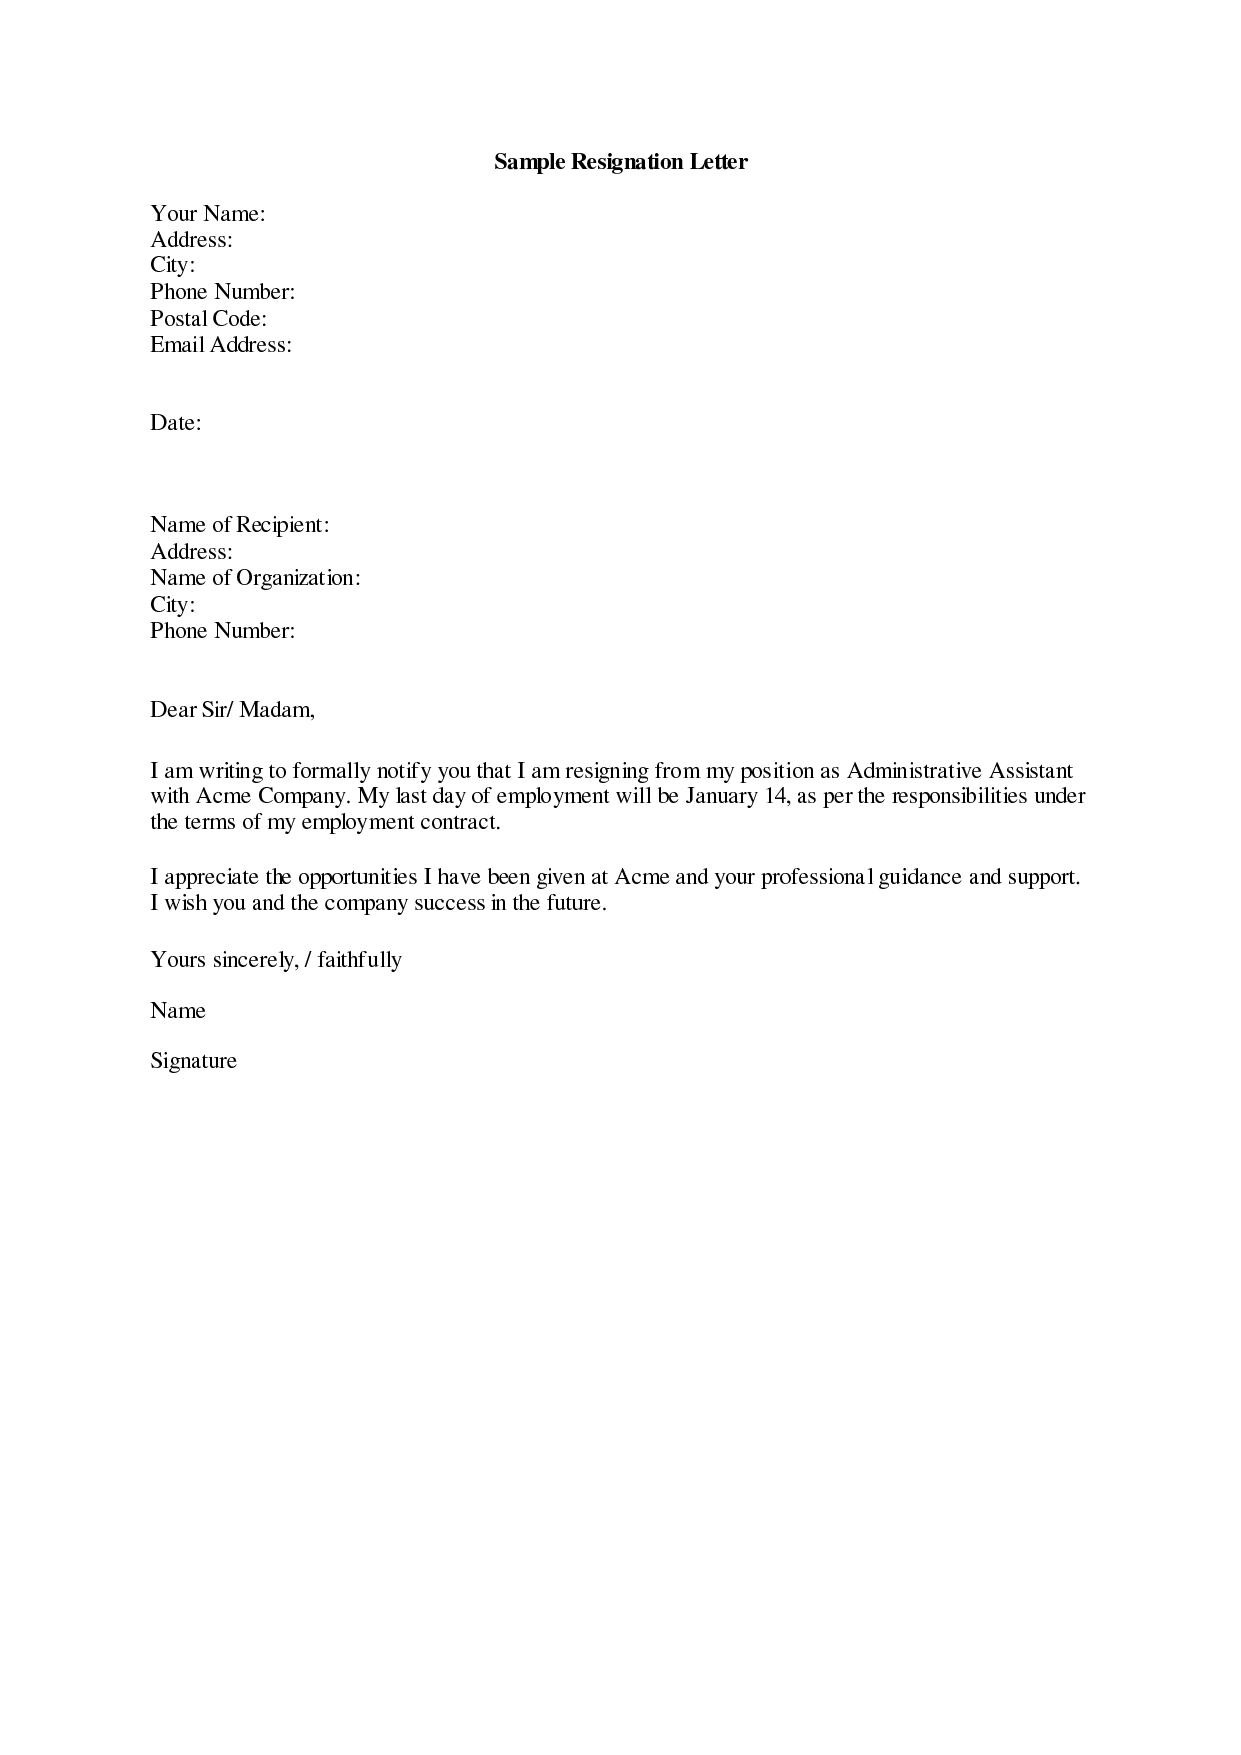 Official Letter Of Resignation Template - Resignation Letter Sample 19 Letter Of Resignation